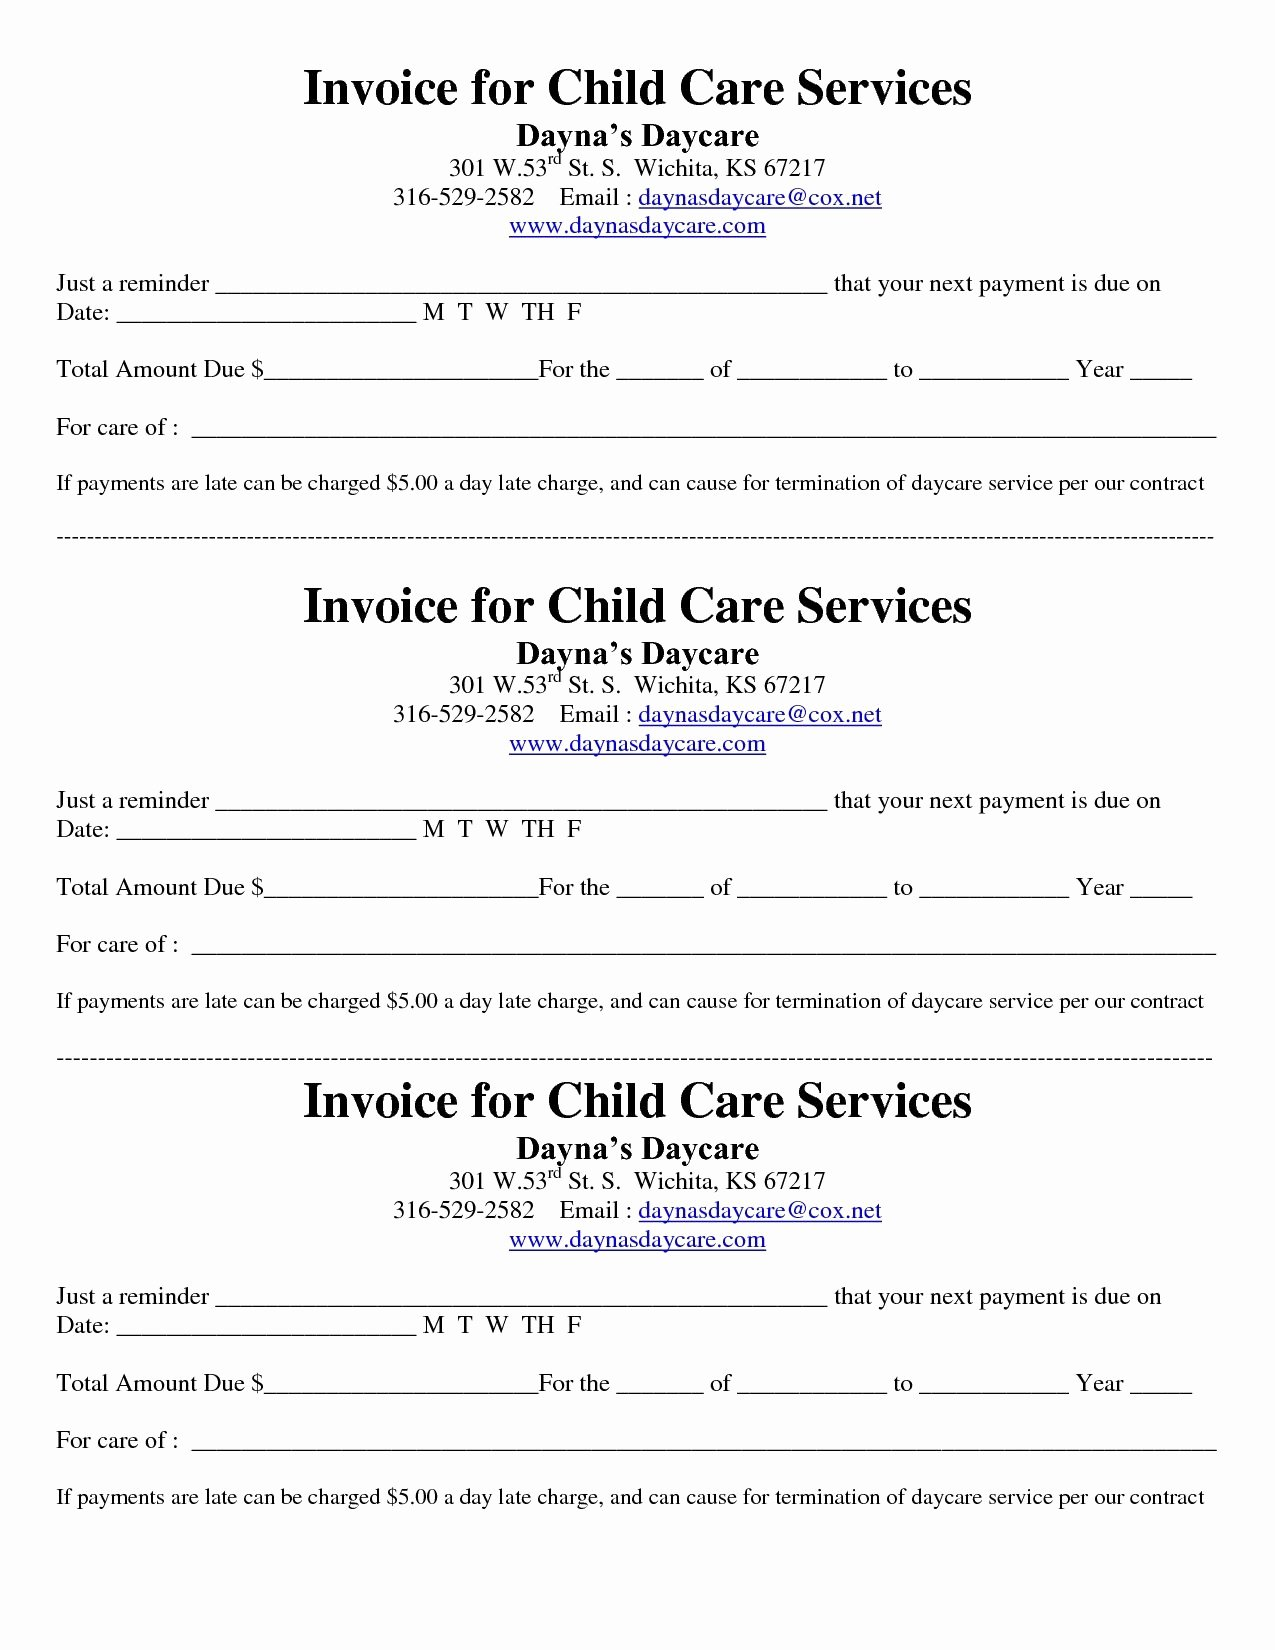 Child Care Receipts Template Beautiful Child Care Receipt Invoice